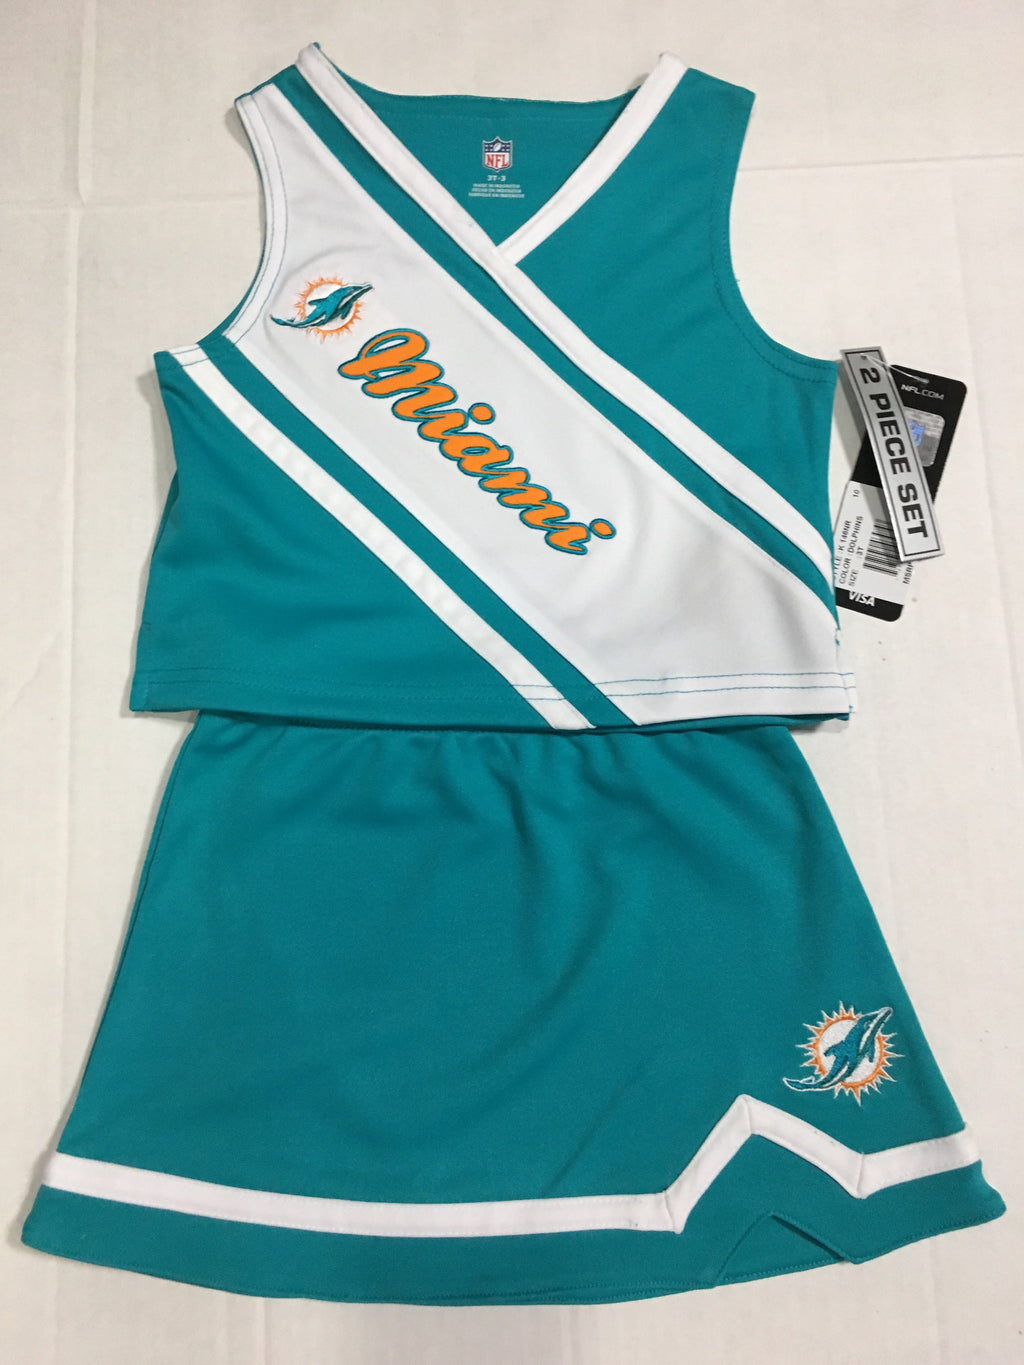 Miami Dolphins Youth 2 Piece Cheerleader Set